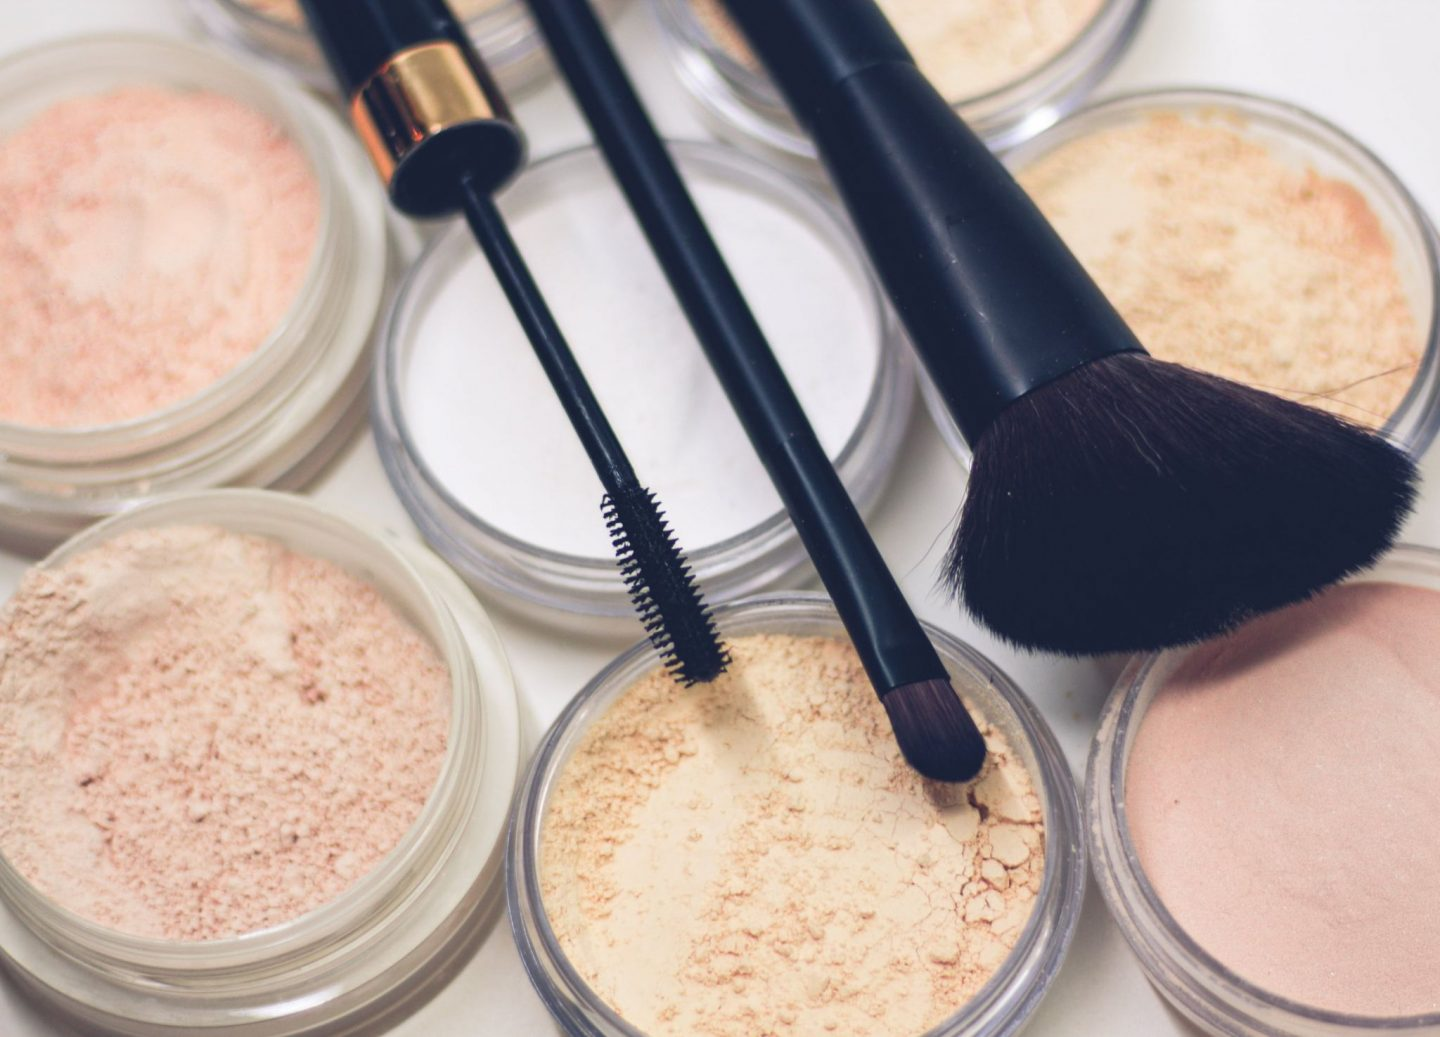 Learn about your undertones, the secret behind choosing the right makeup